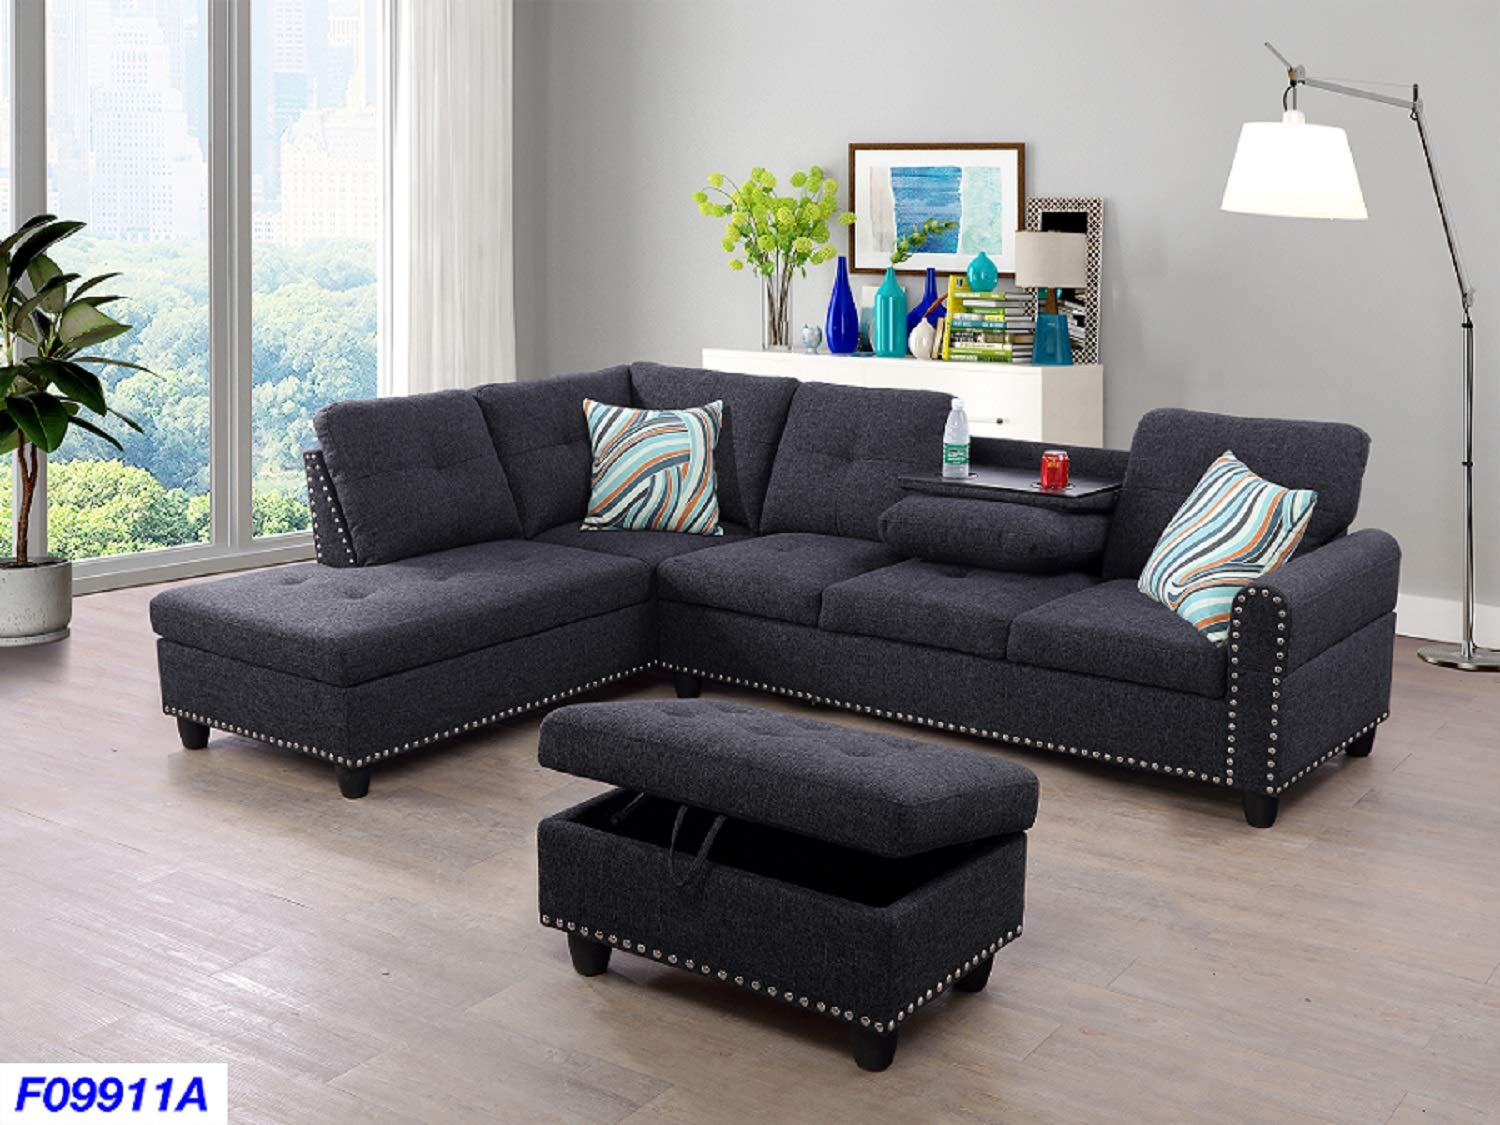 Amazon.com: Beverly Fine Funiture F09911A-3PC Sectional Sofa ...